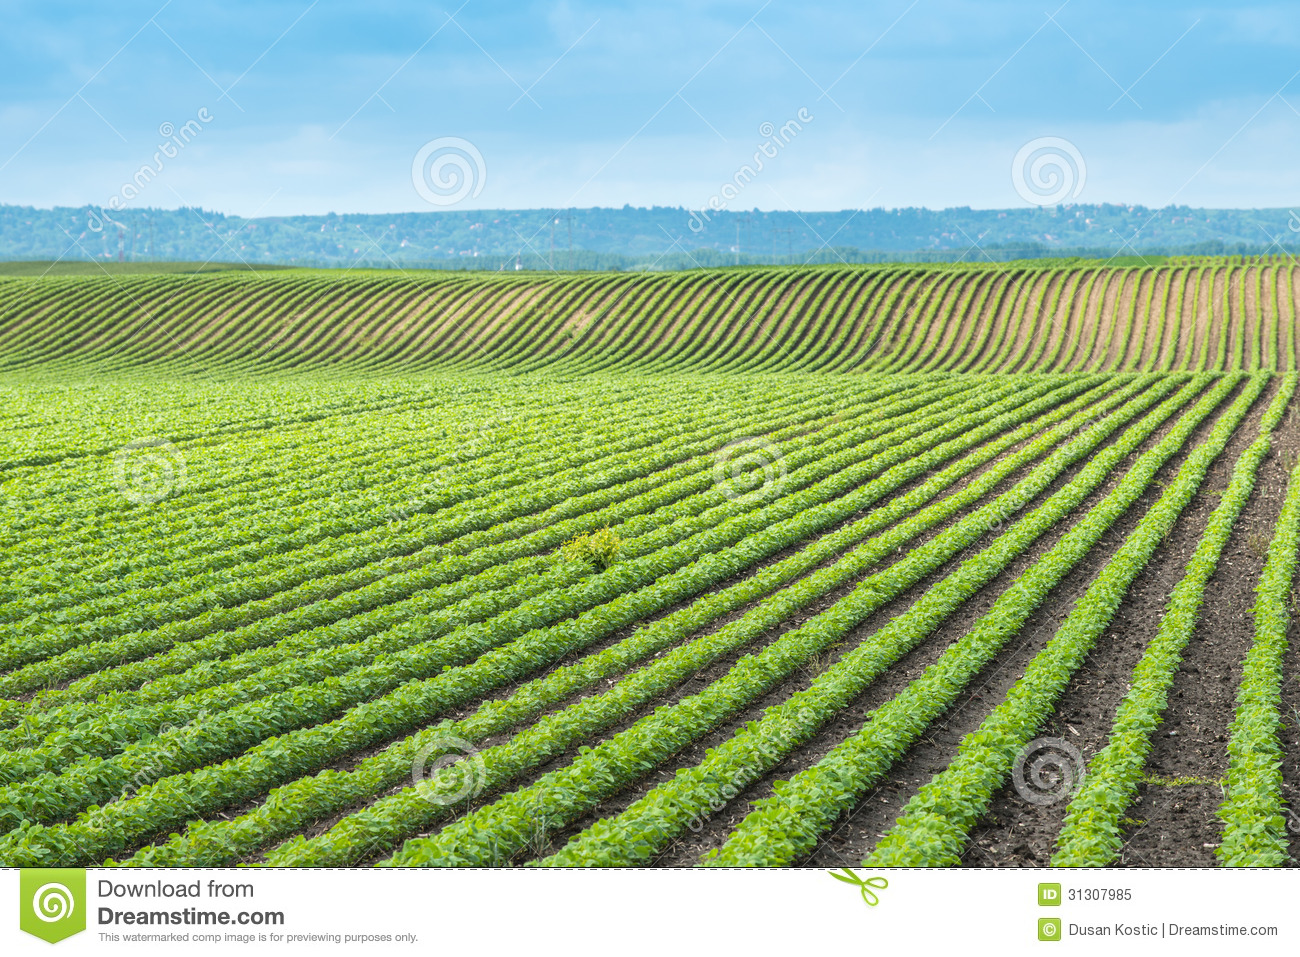 Soybean Field Royalty Free Stock Photo - Image: 31307985